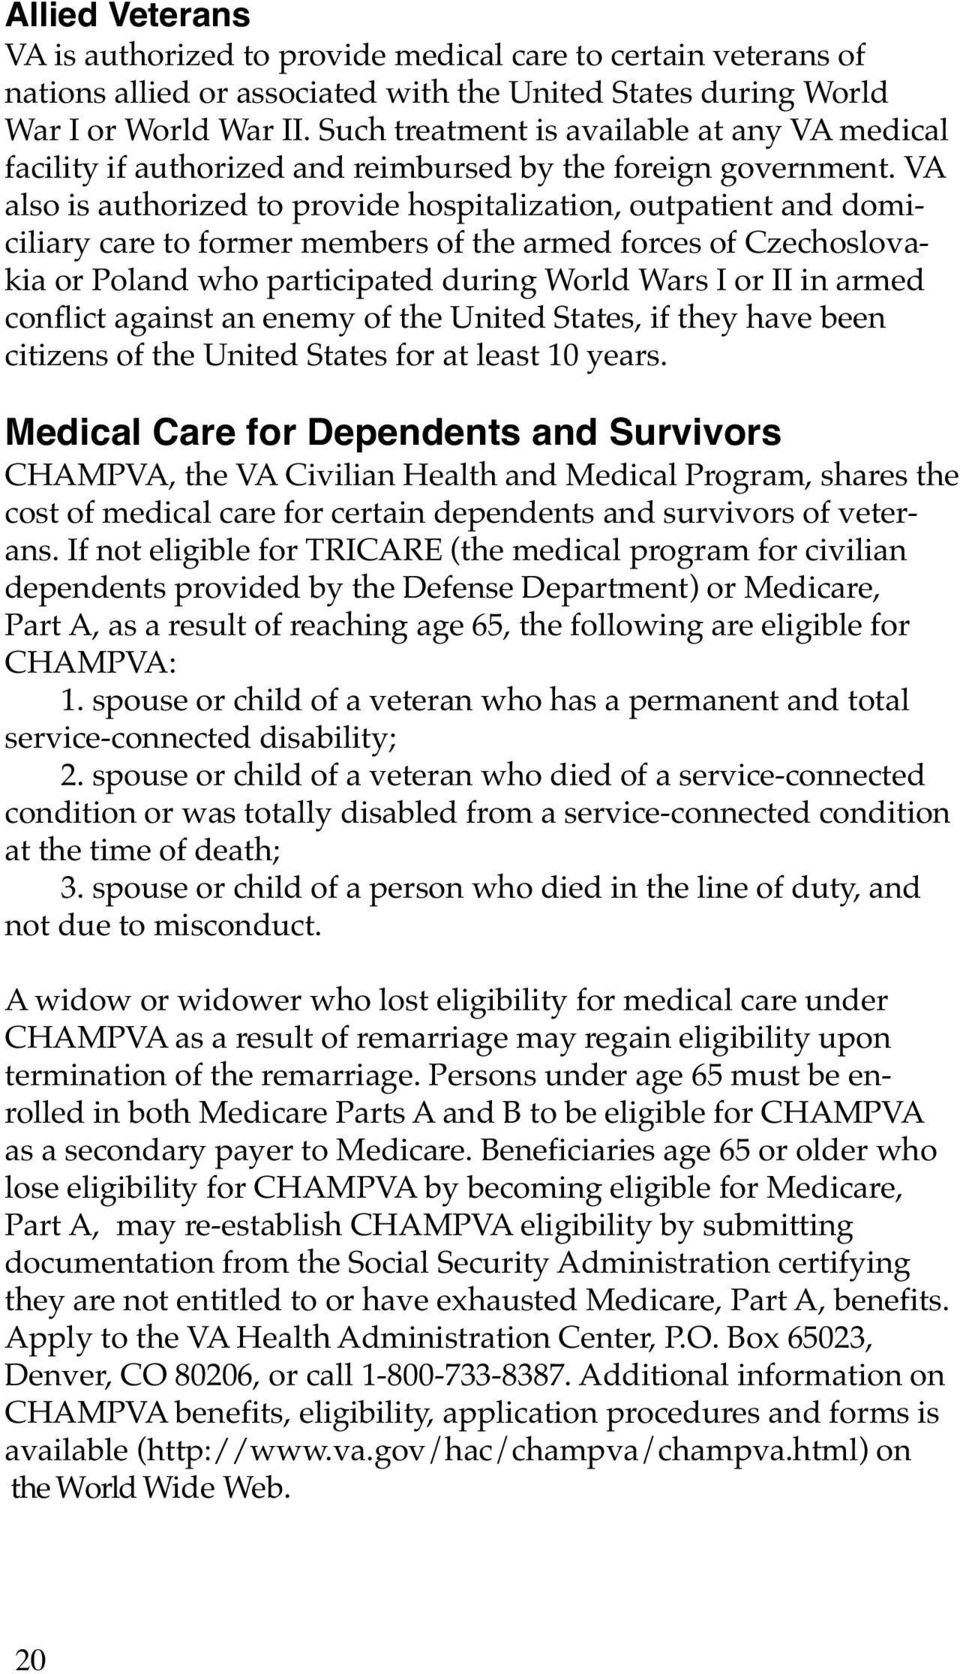 VA also is authorized to provide hospitalization, outpatient and domiciliary care to former members of the armed forces of Czechoslovakia or Poland who participated during World Wars I or II in armed